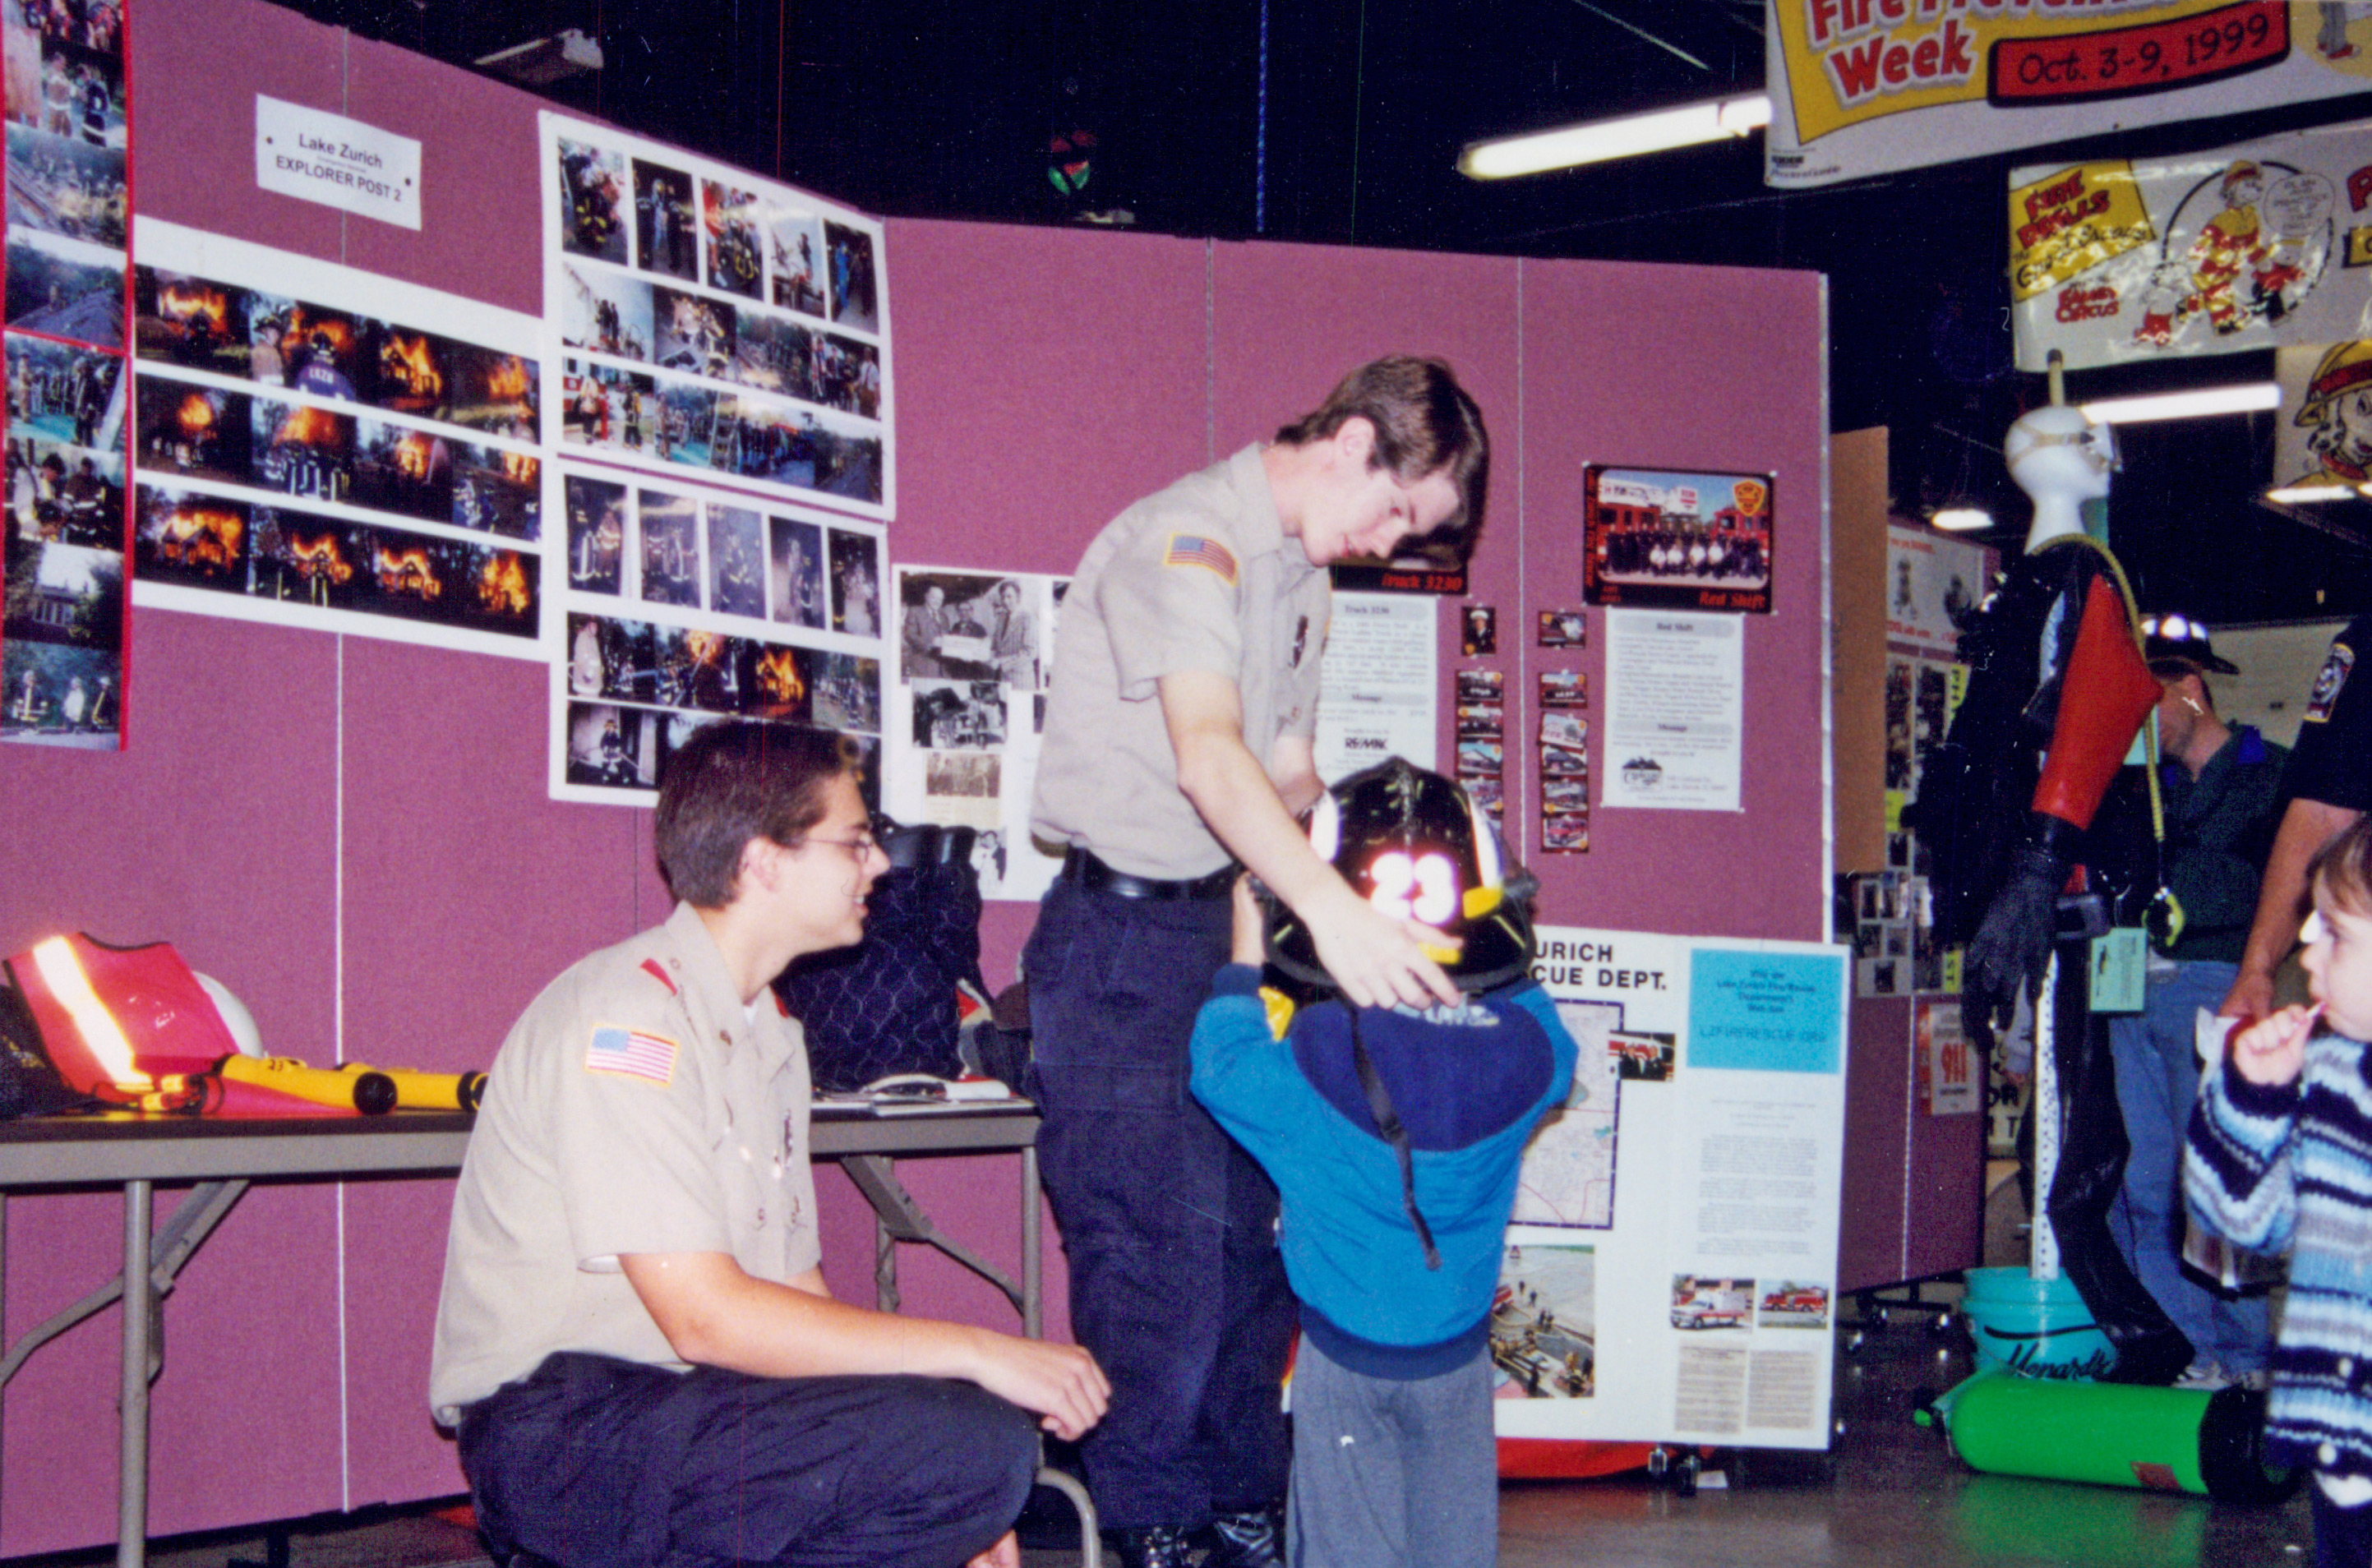 During fire prevention week, the local Boy Scout troop volunteer assisting kids with trying on equipment